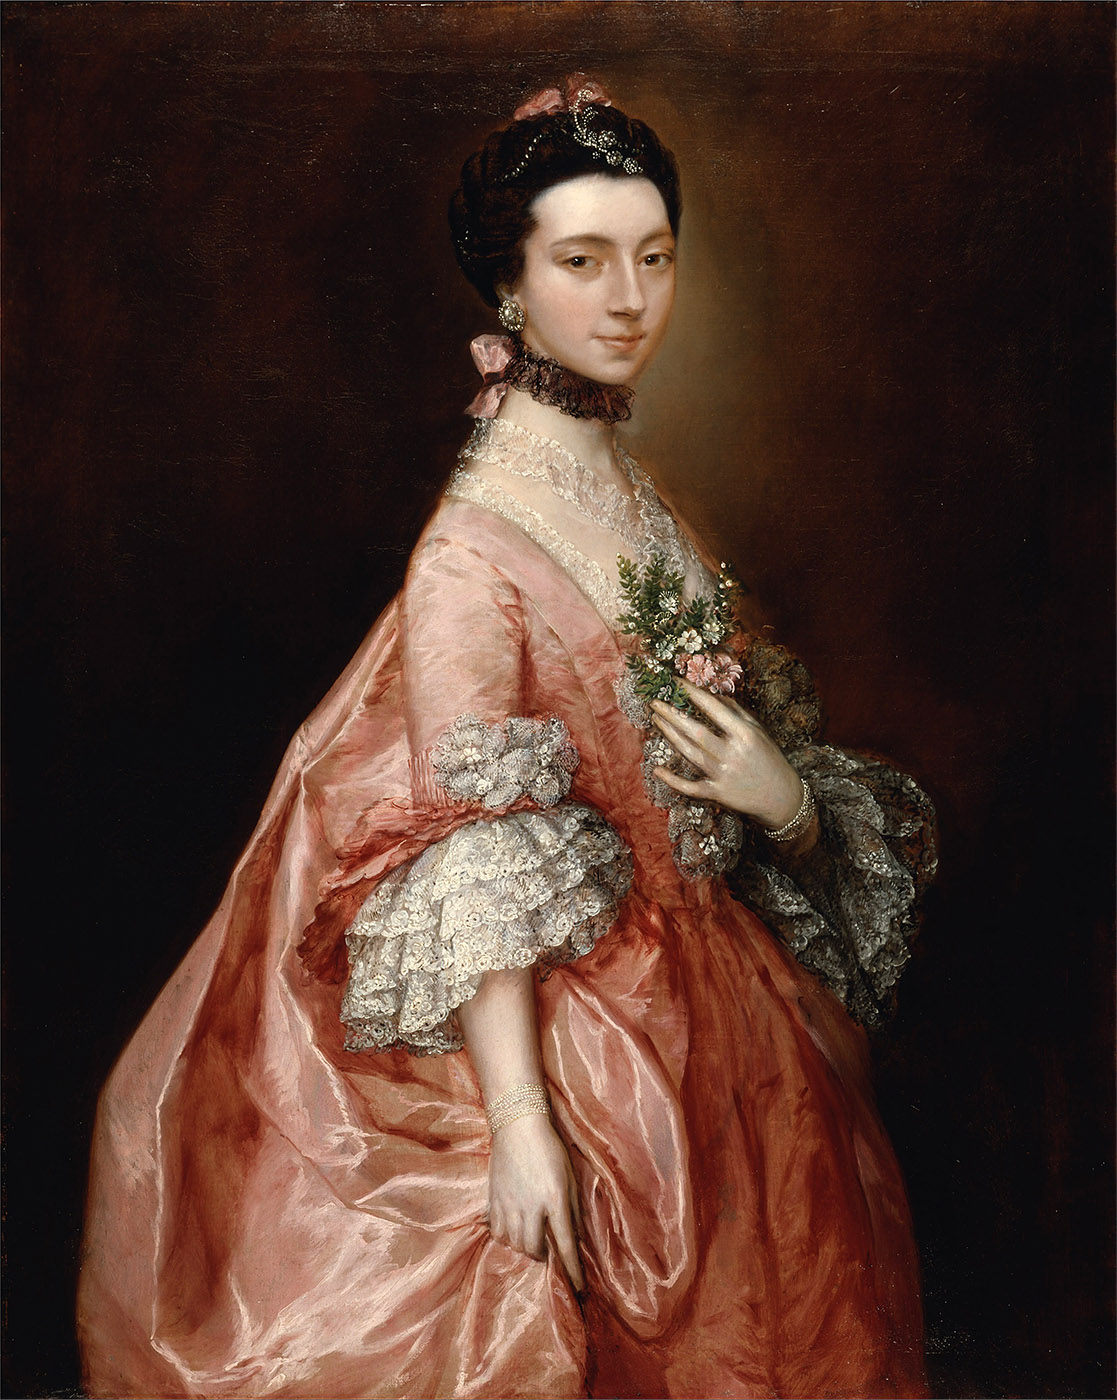 Thomas Gainsborough. Mary_Little. Hacia 1763. Yale Center for British Art. New Heaven. Connecticut.